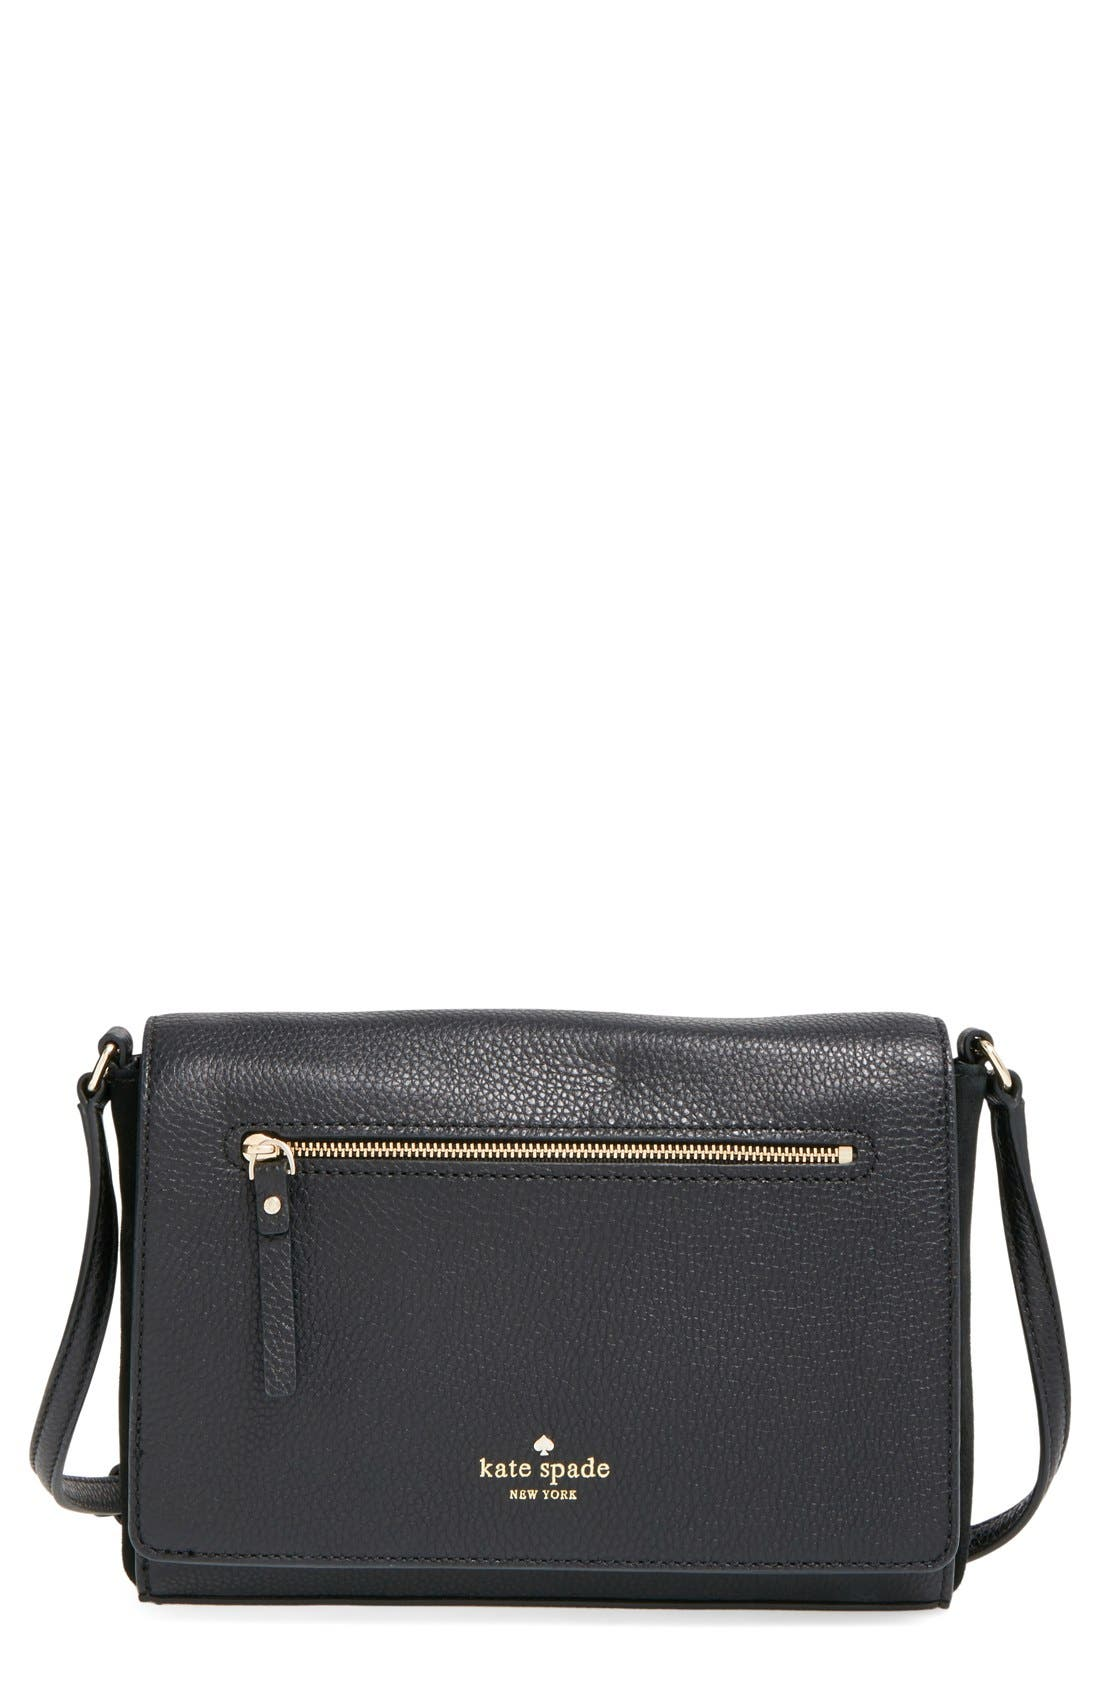 Main Image - kate spade new york 'matthews drive - patty' leather & suede crossbody bag